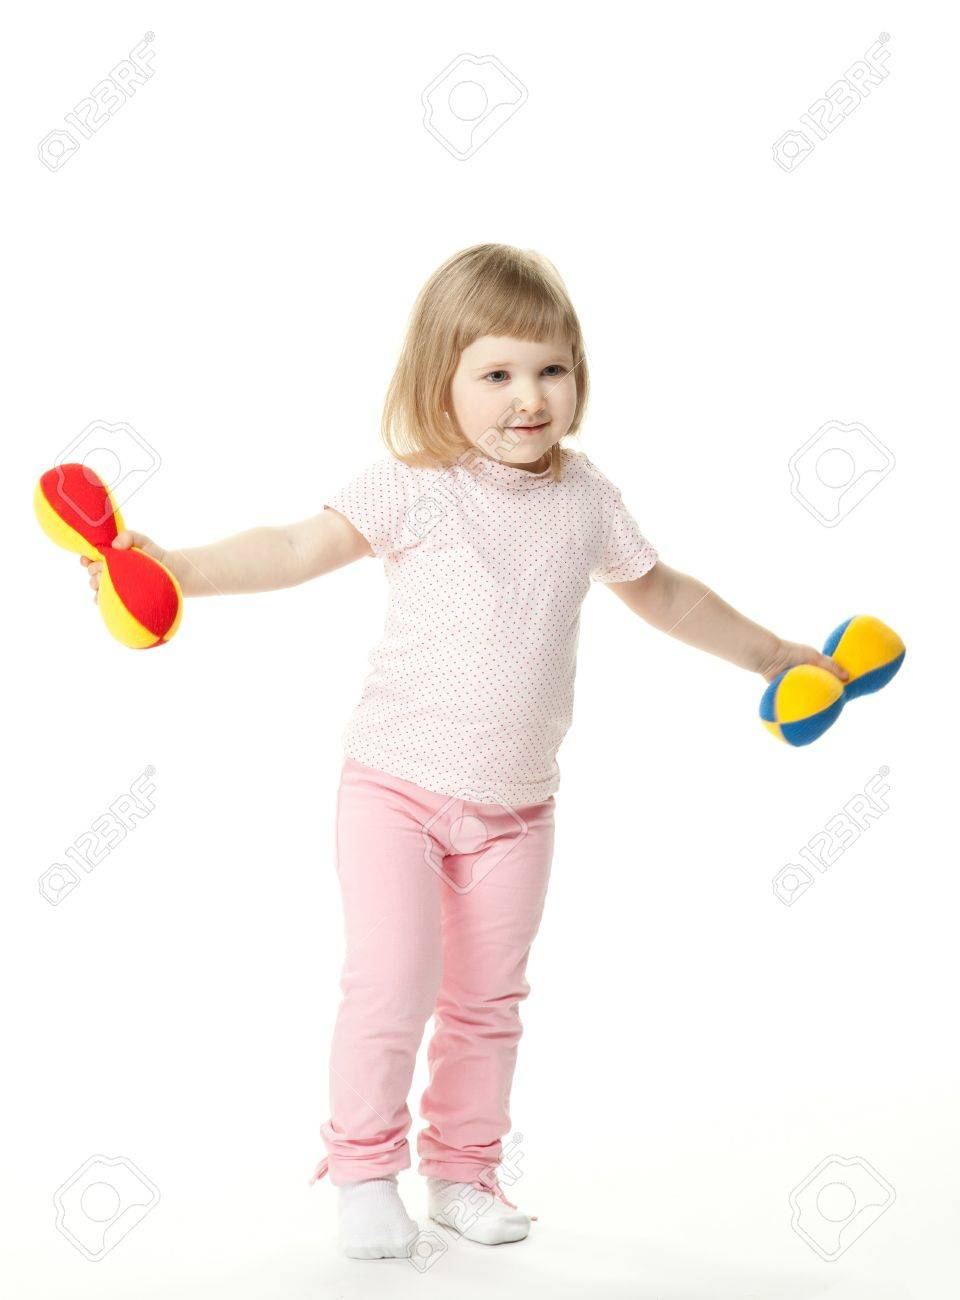 Cute little baby girl doing sport exercises with toy dumbbells; white background Stock Photo - 13147762